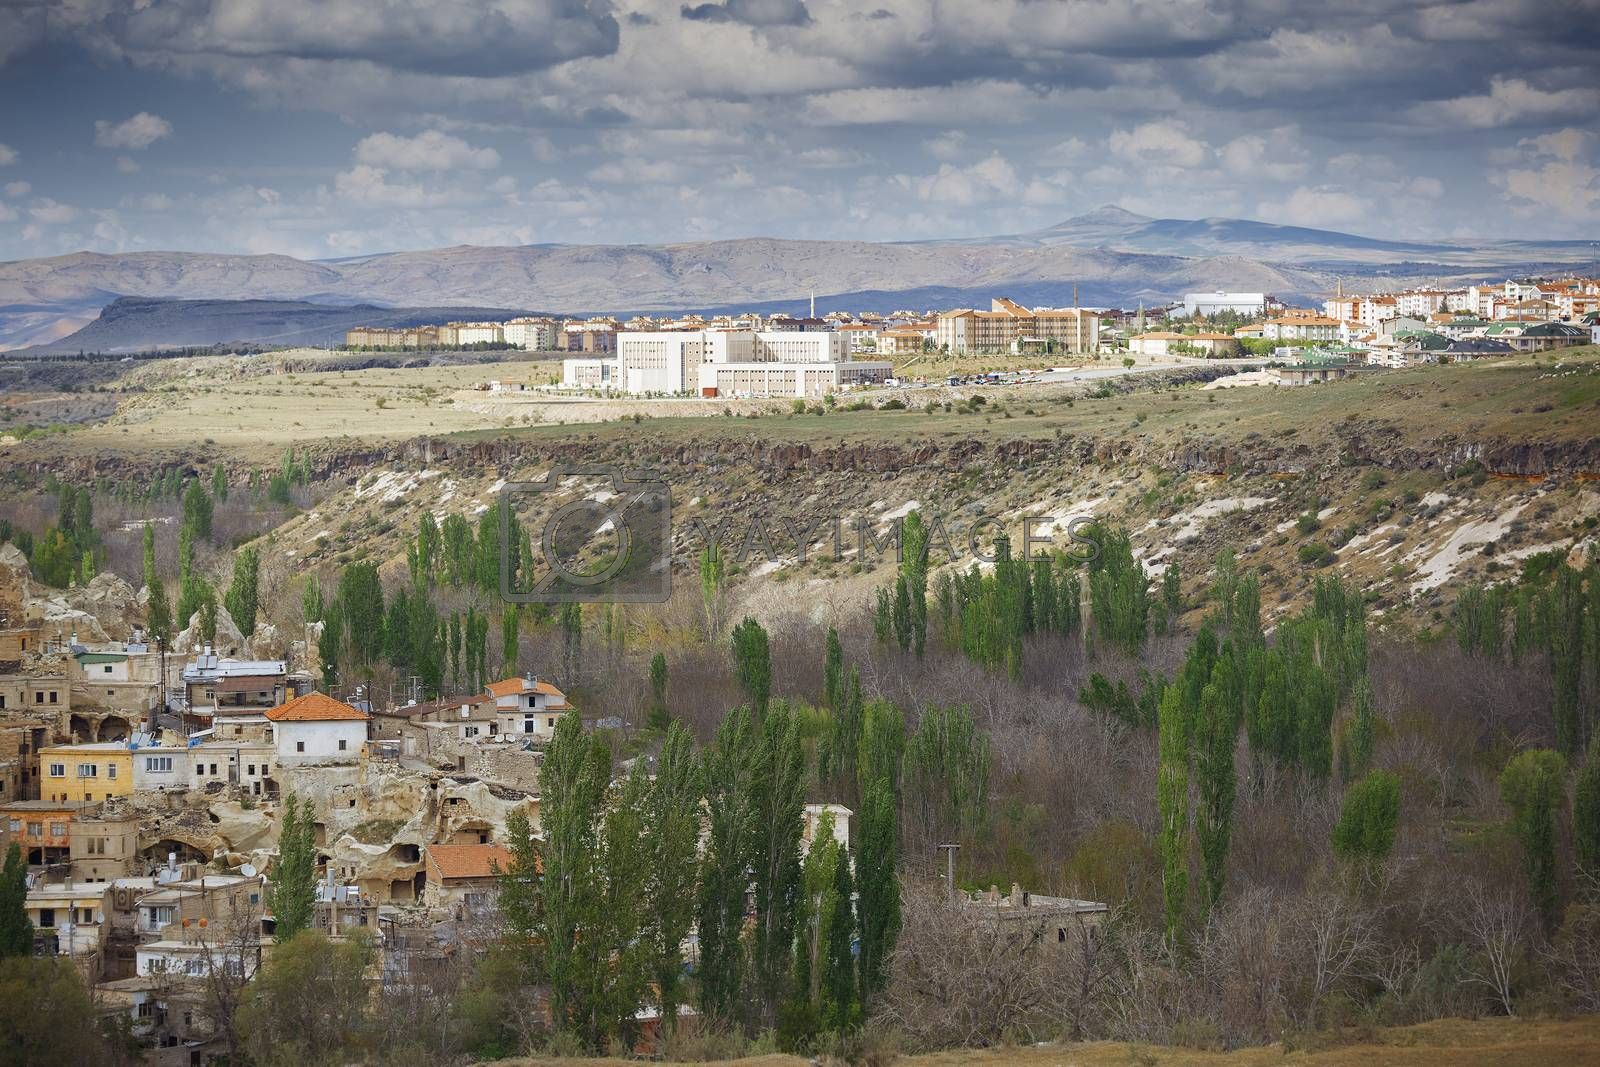 Residential buildings in rural province of Turkey